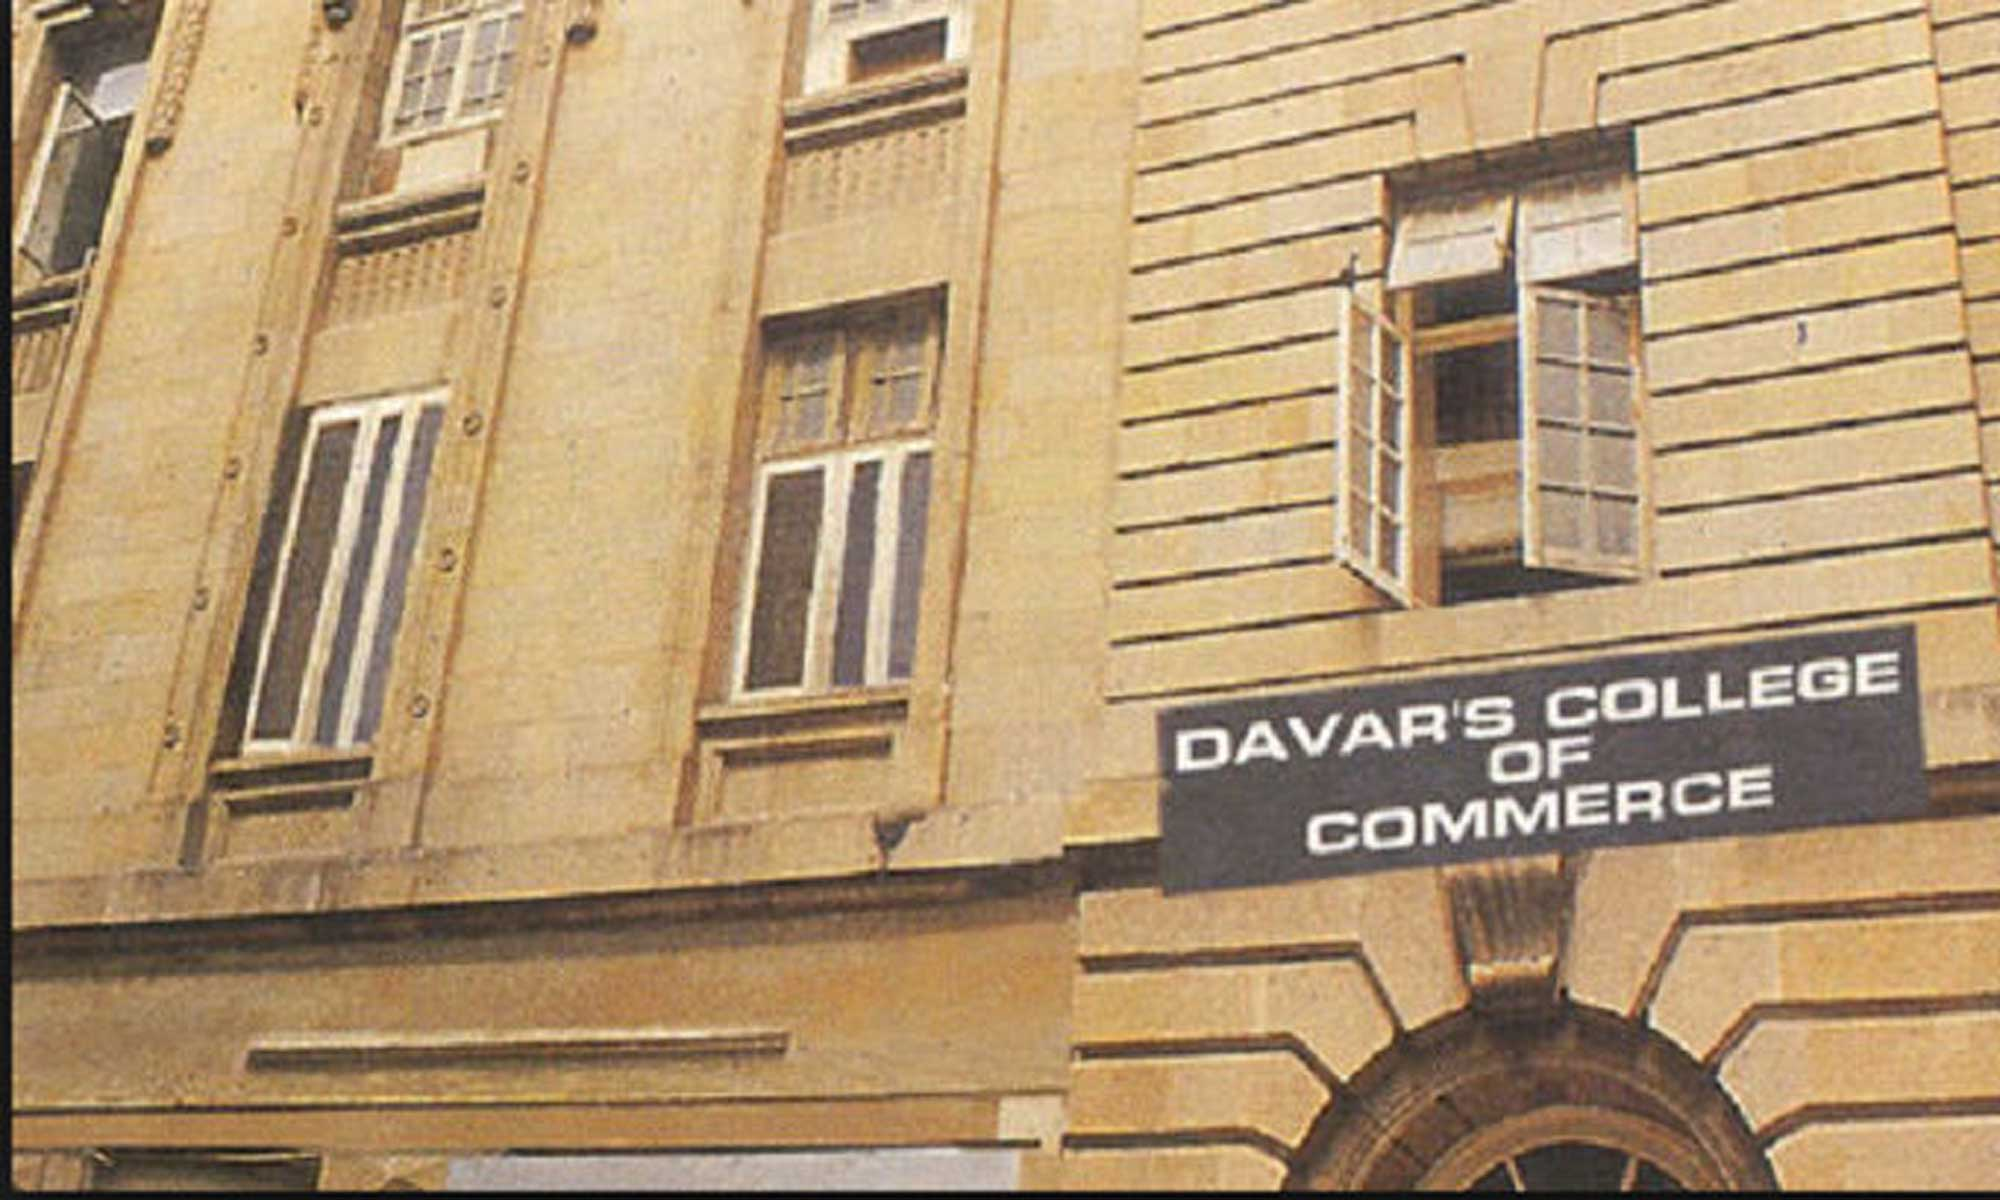 Davar`s College of Commerce